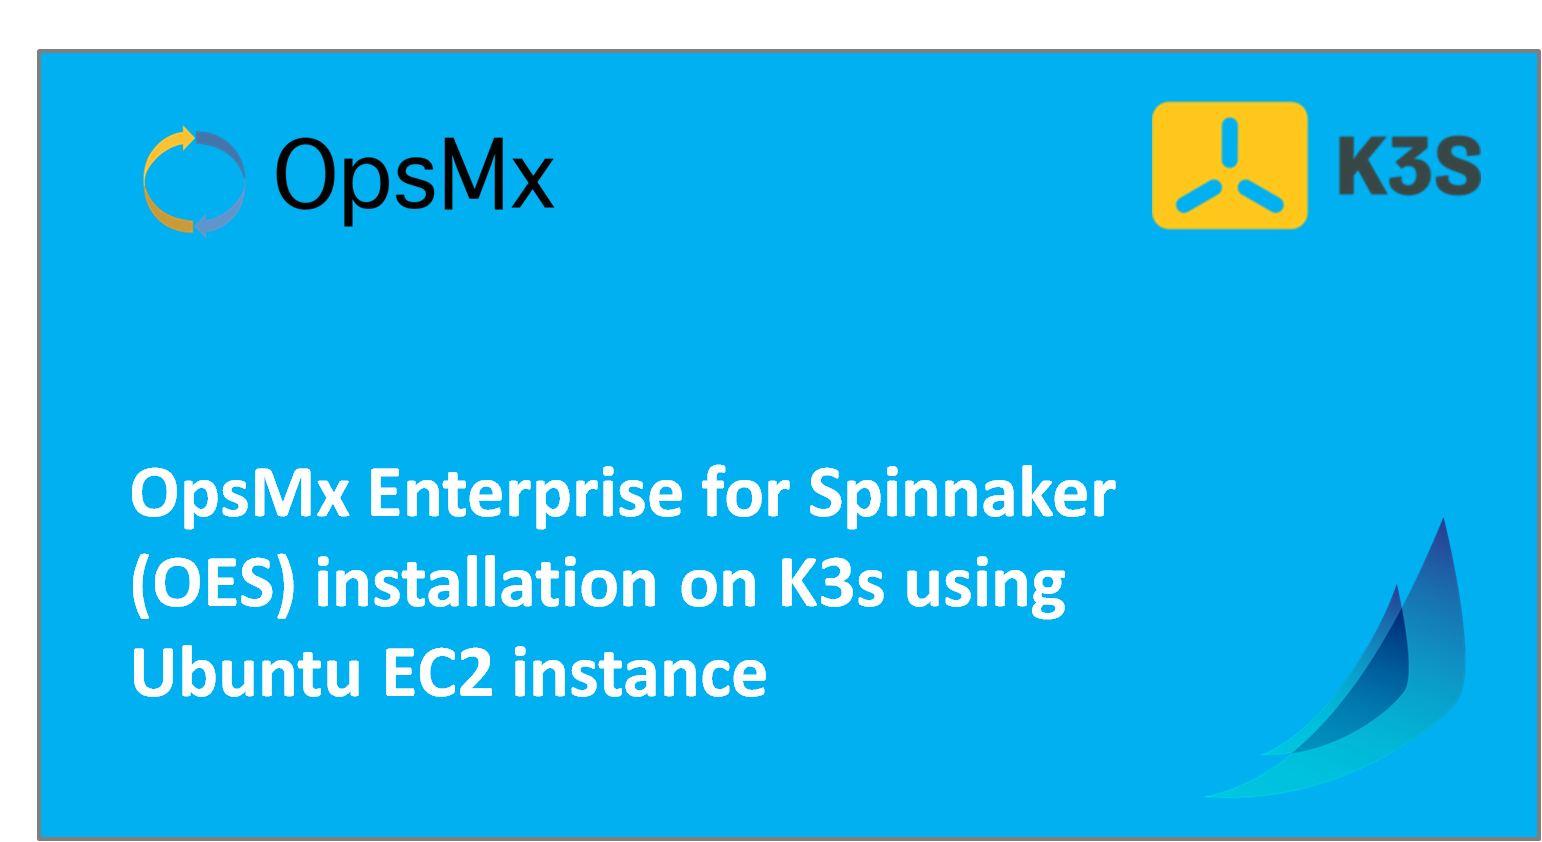 OpsMx Enterprise for Spinnaker (OES) installation on K3s using Ubuntu EC2 instance